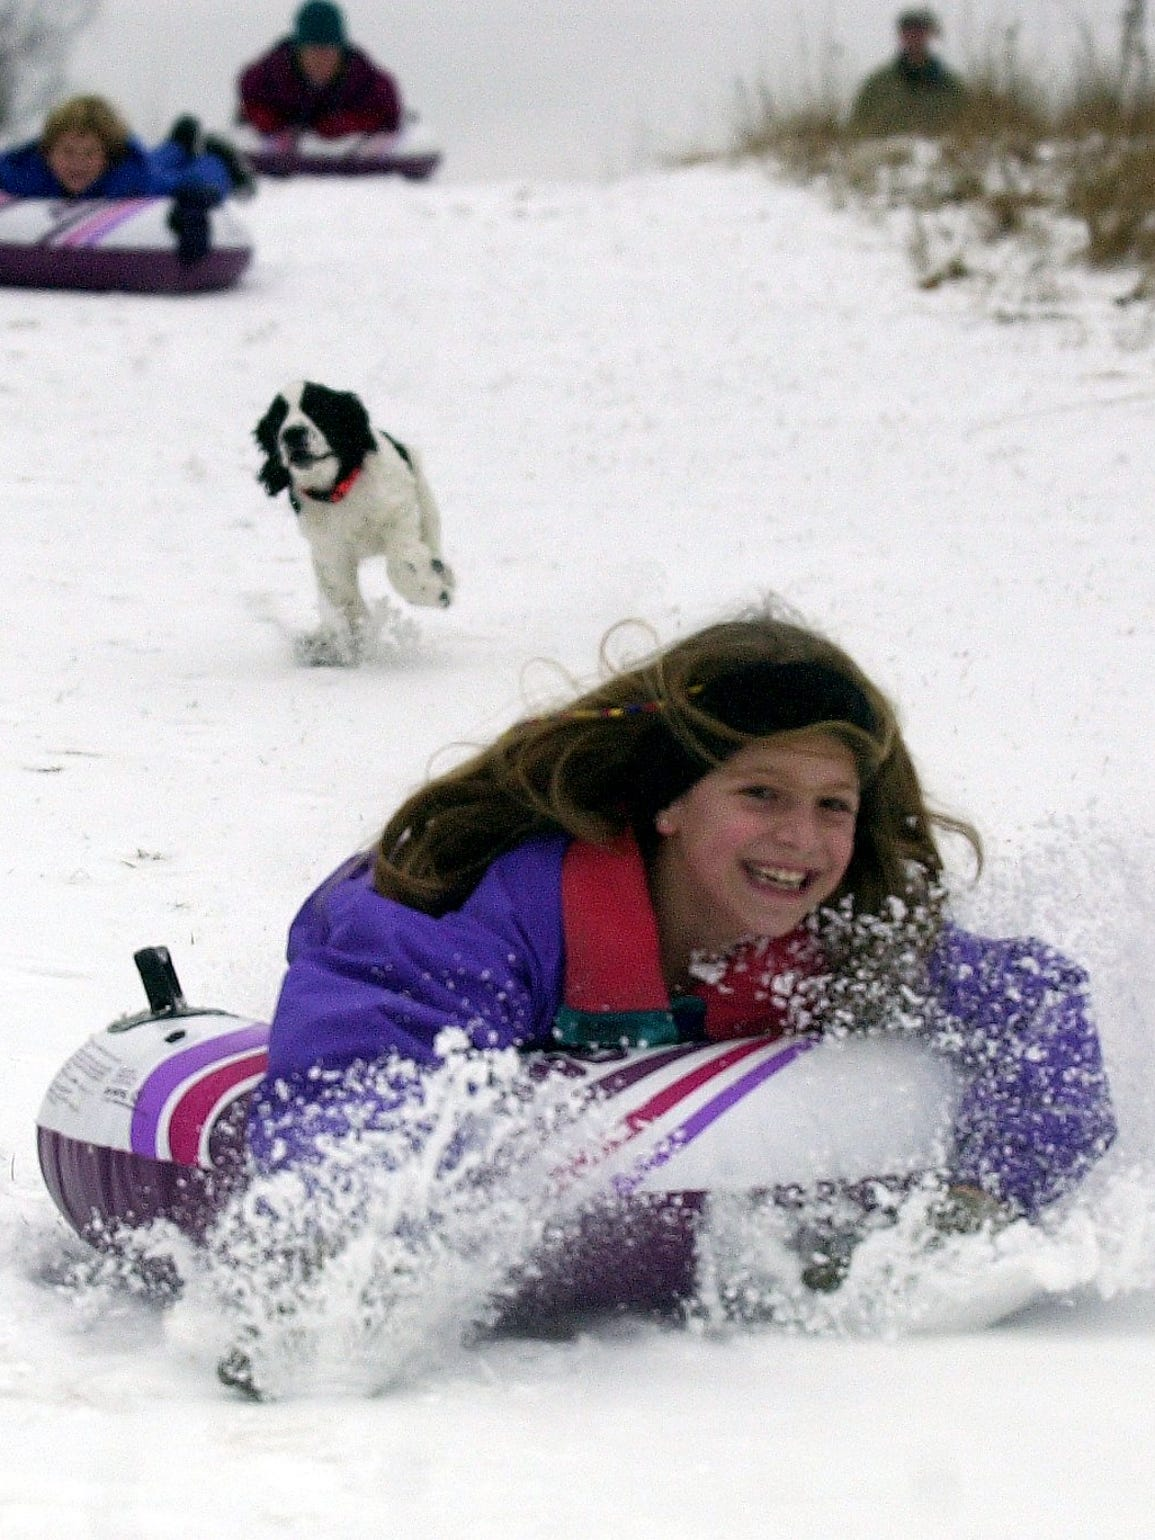 In this 2002 file photo, Sarah Martin, of Wausau, zooms